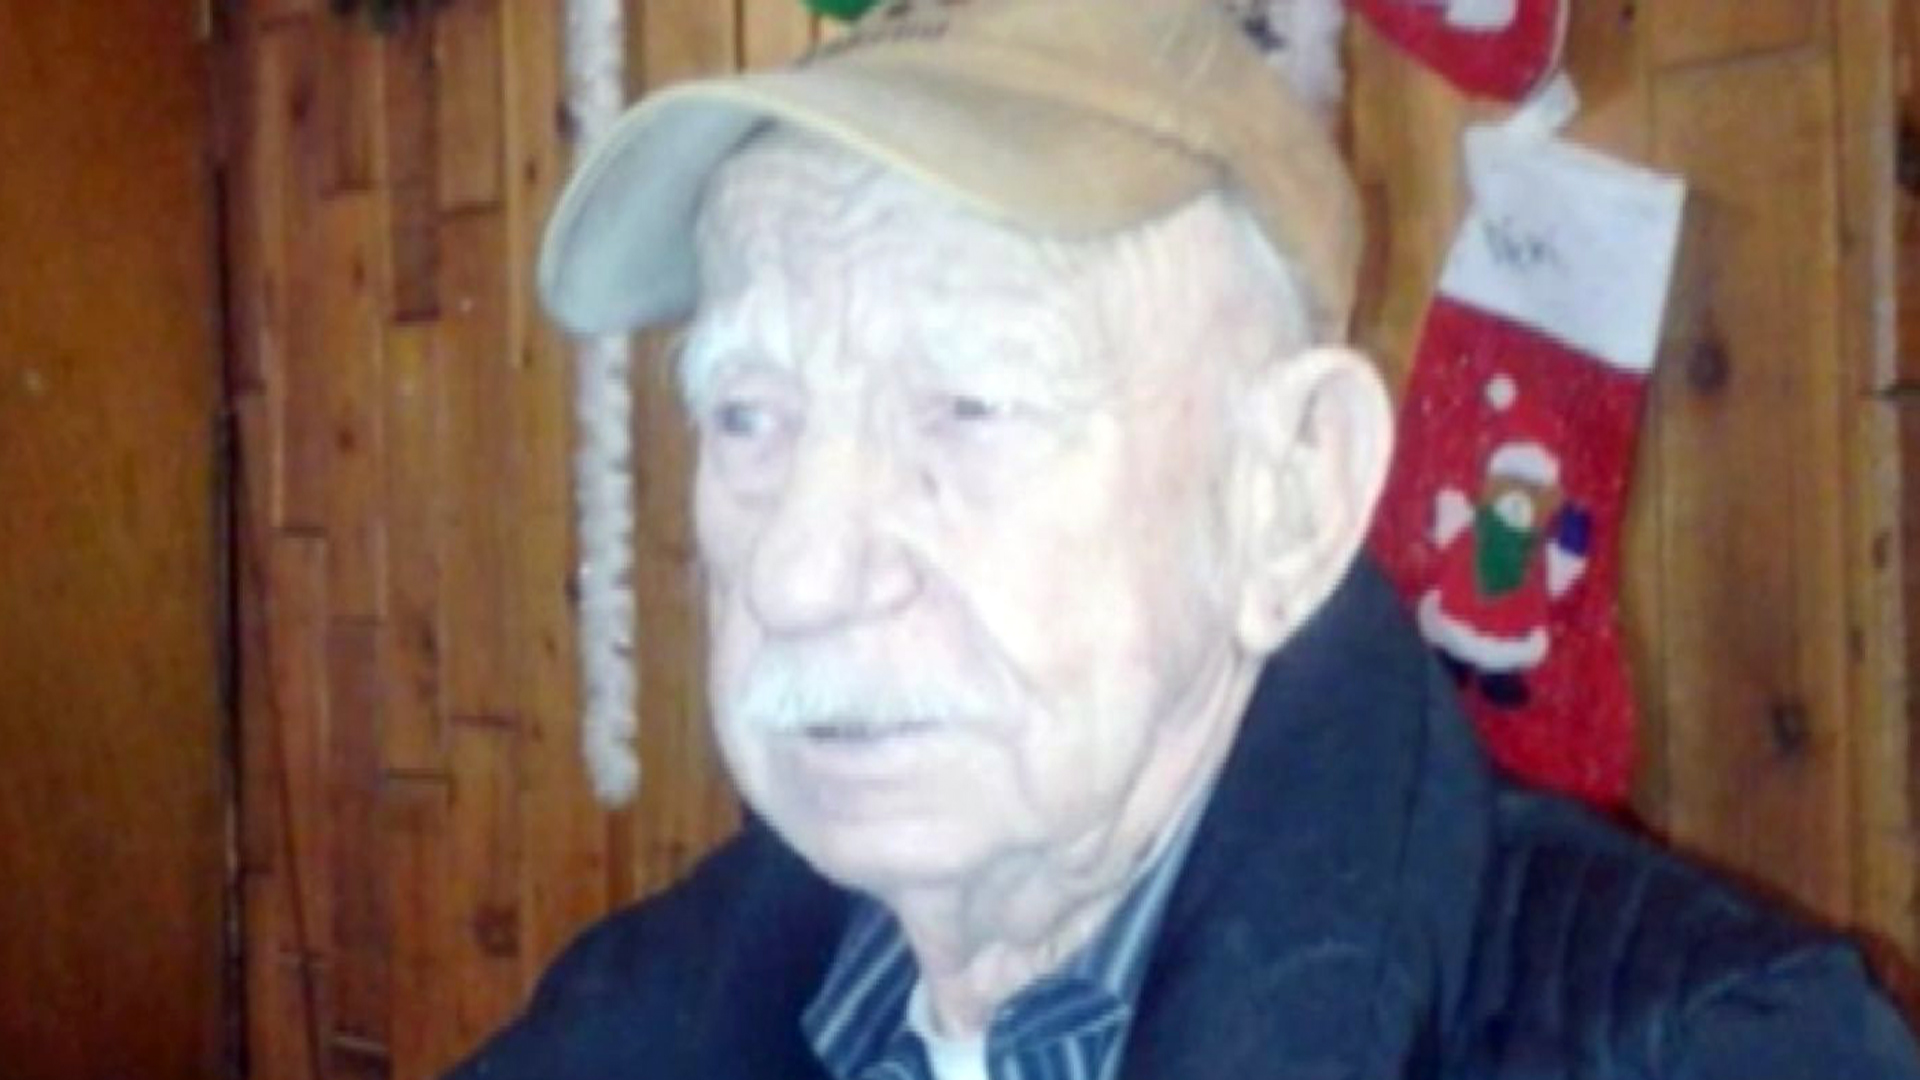 Teen charged, second sought in beating death of WWII vet, 88, in Spokane, Wash.